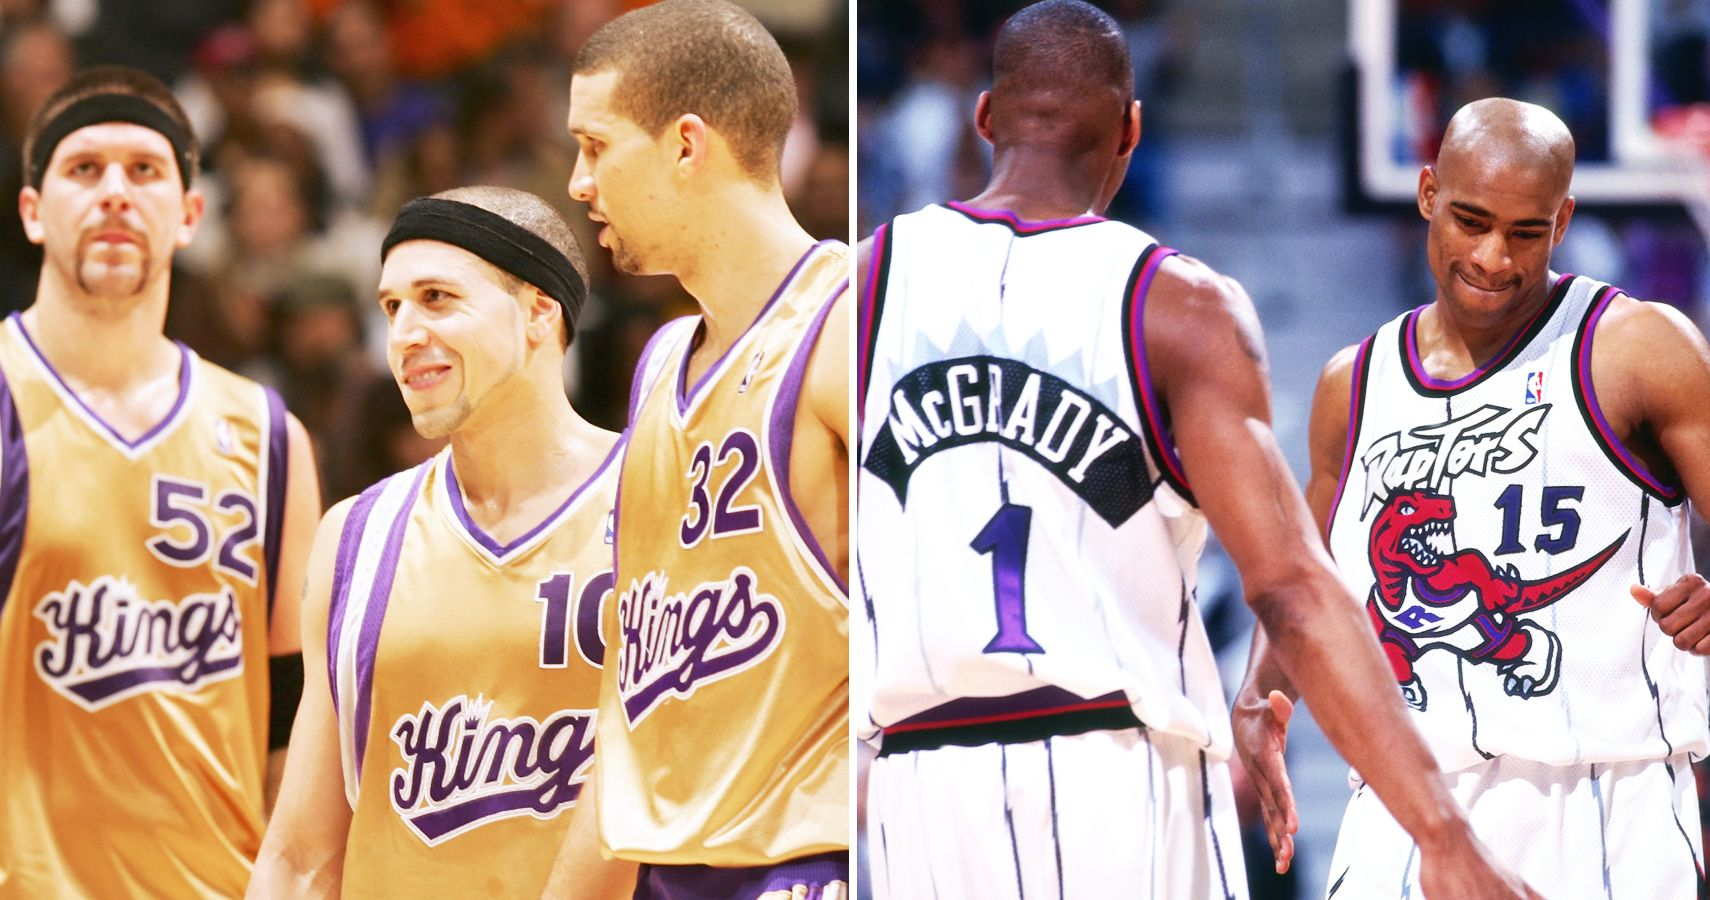 Image result for NBA Throwback Jerseys